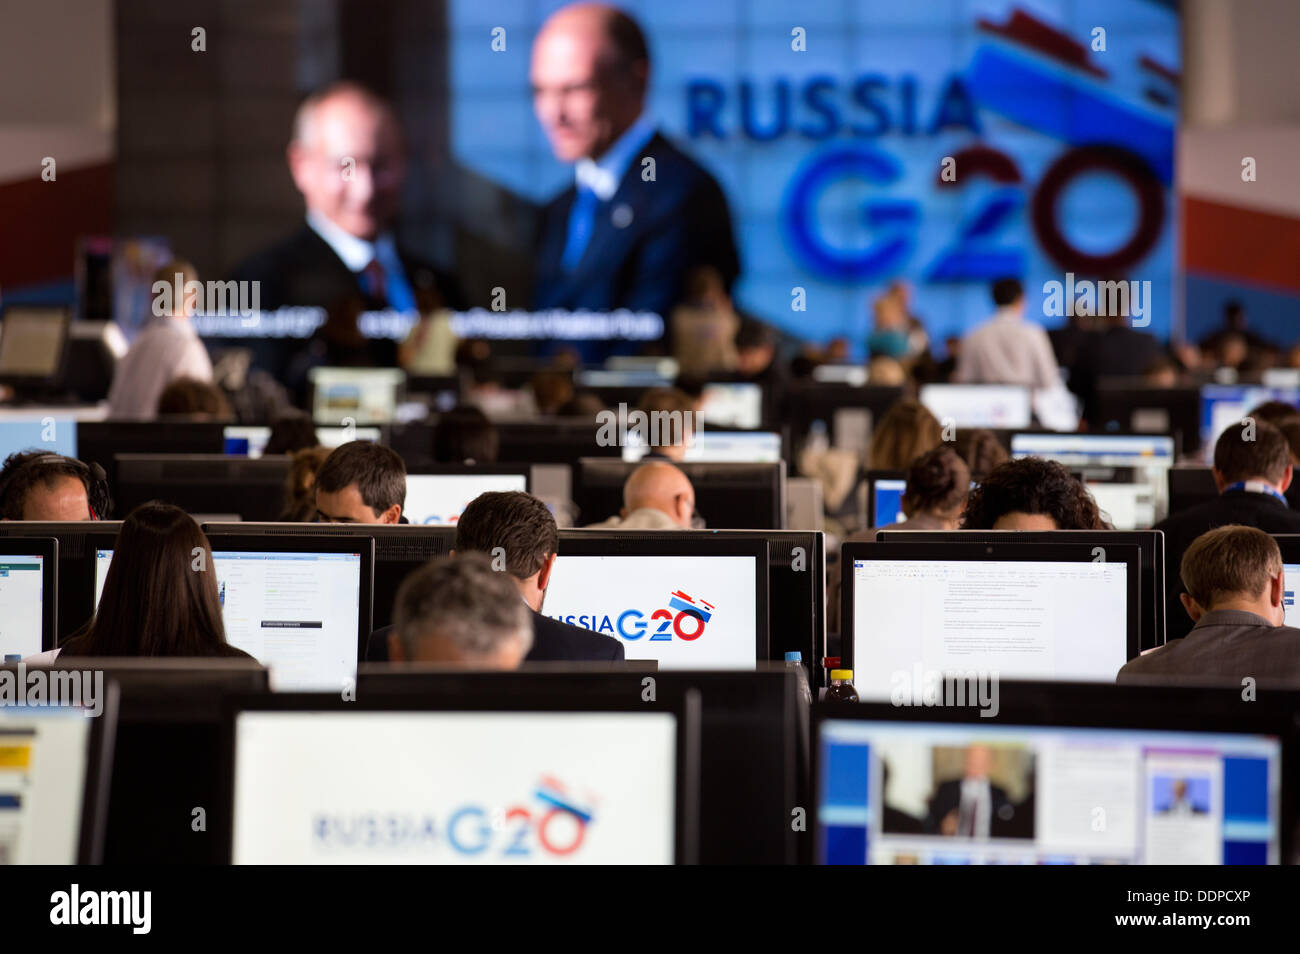 St. Petersburg, Russia. 05th Sep, 2013. Journalists work in the media center at the G20 summit in St. Petersburg, Stock Photo